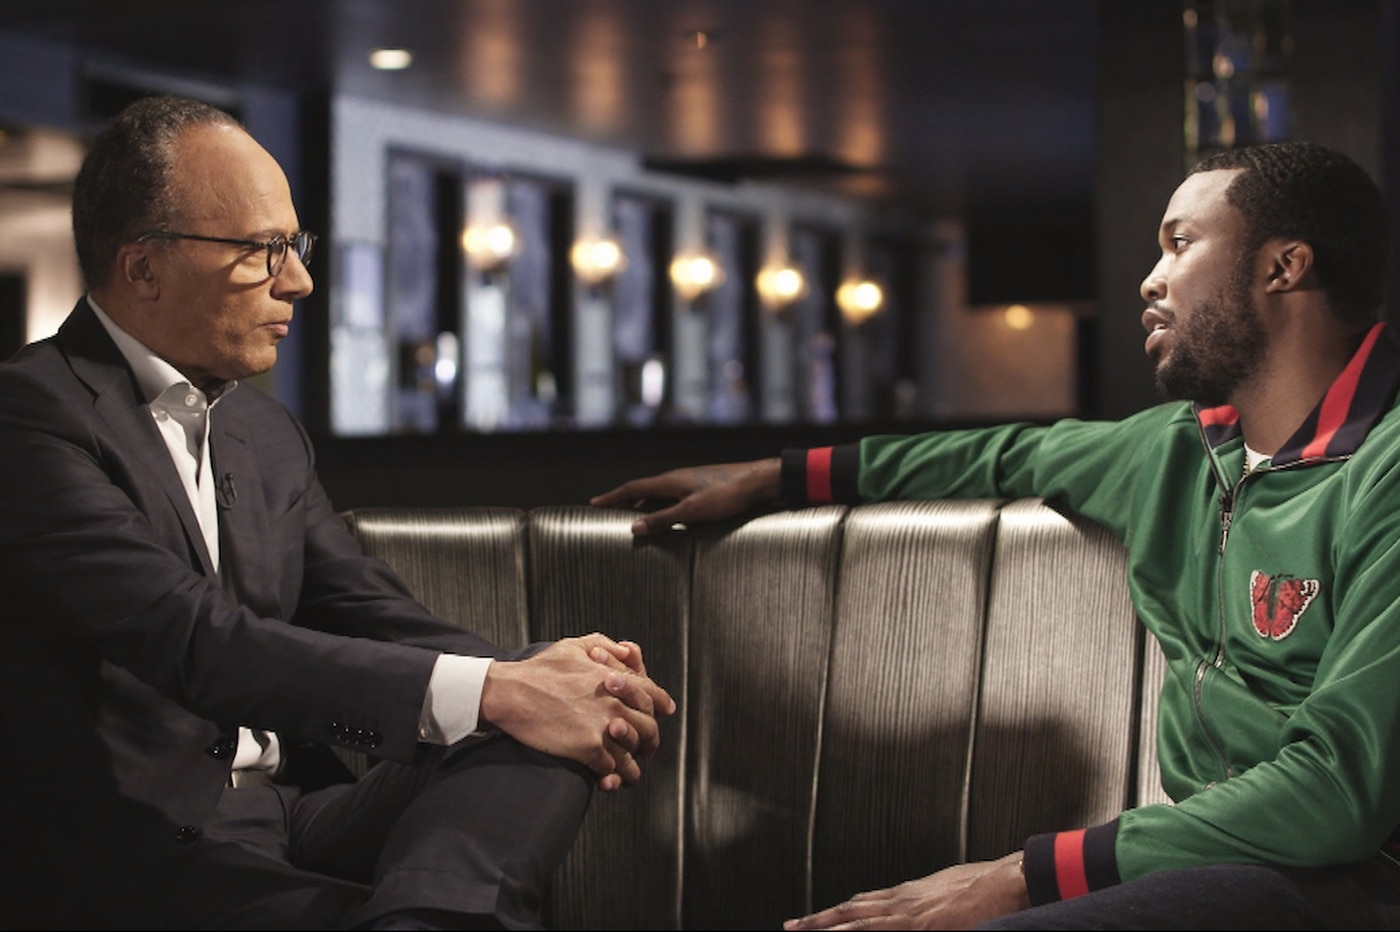 Lester Holt: Dateline's Meek Mill special, airing Sunday, was sparked by Jay-Z op-ed